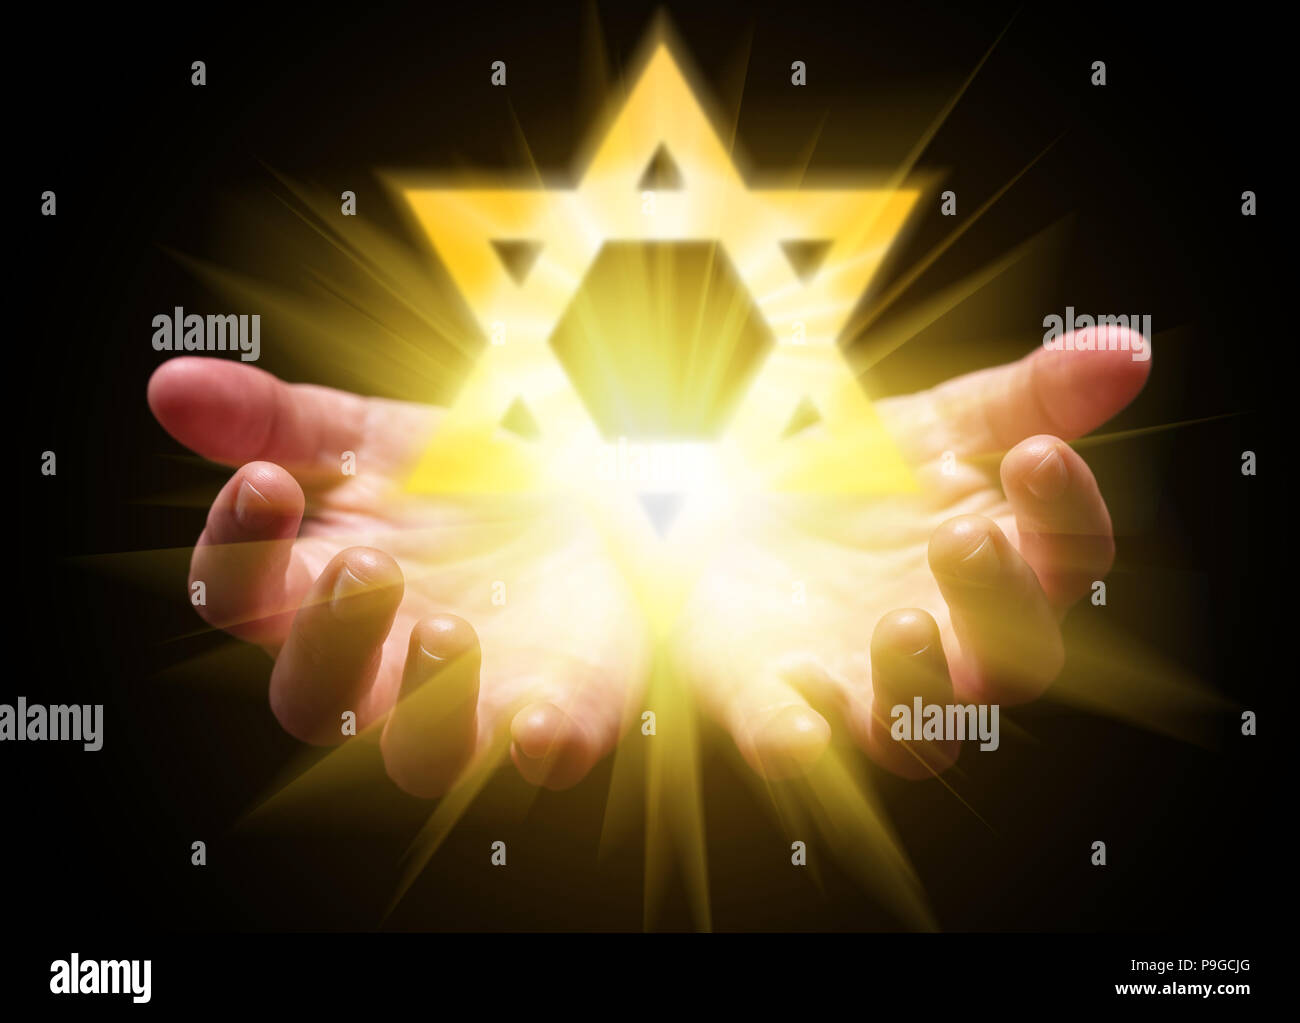 Hands cupped and holding or showing the Star of David. Magen David or Seal of Solomon with bright, glowing, shining light. Concept for Judaism, Jew, H - Stock Image